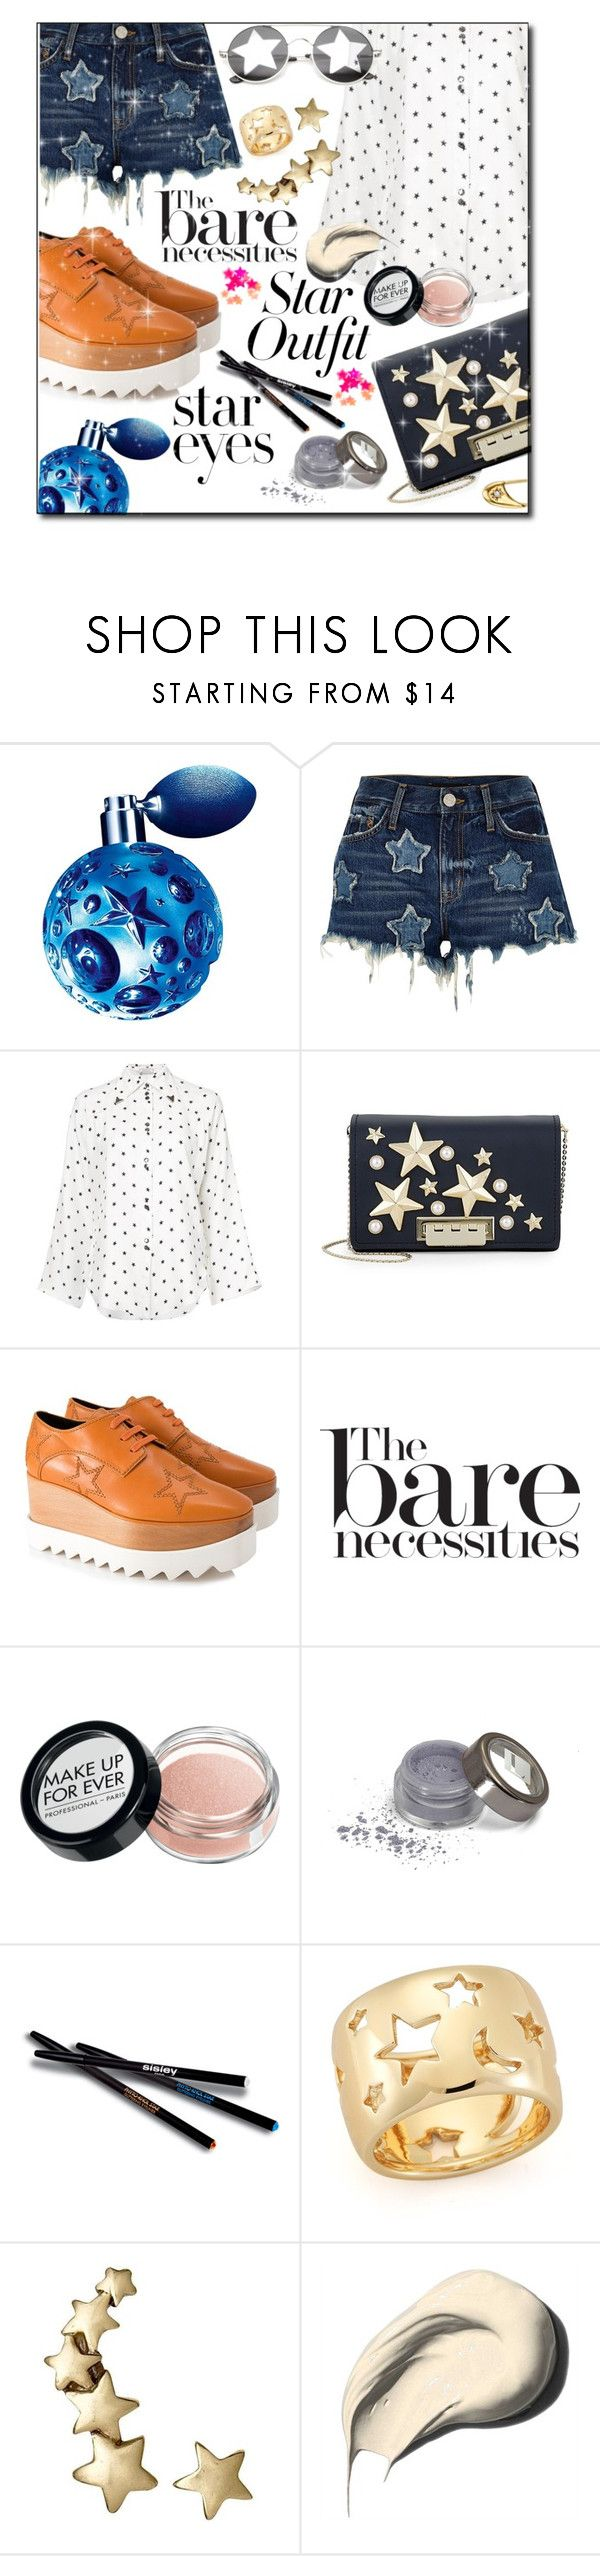 """Star fever"" by kitty-kimber ❤ liked on Polyvore featuring Thierry Mugler, River Island, Nina Ricci, ZAC Zac Posen, STELLA McCARTNEY, MAKE UP FOR EVER, Diamond Star, Sisley, Elizabeth and James and Bobbi Brown Cosmetics"